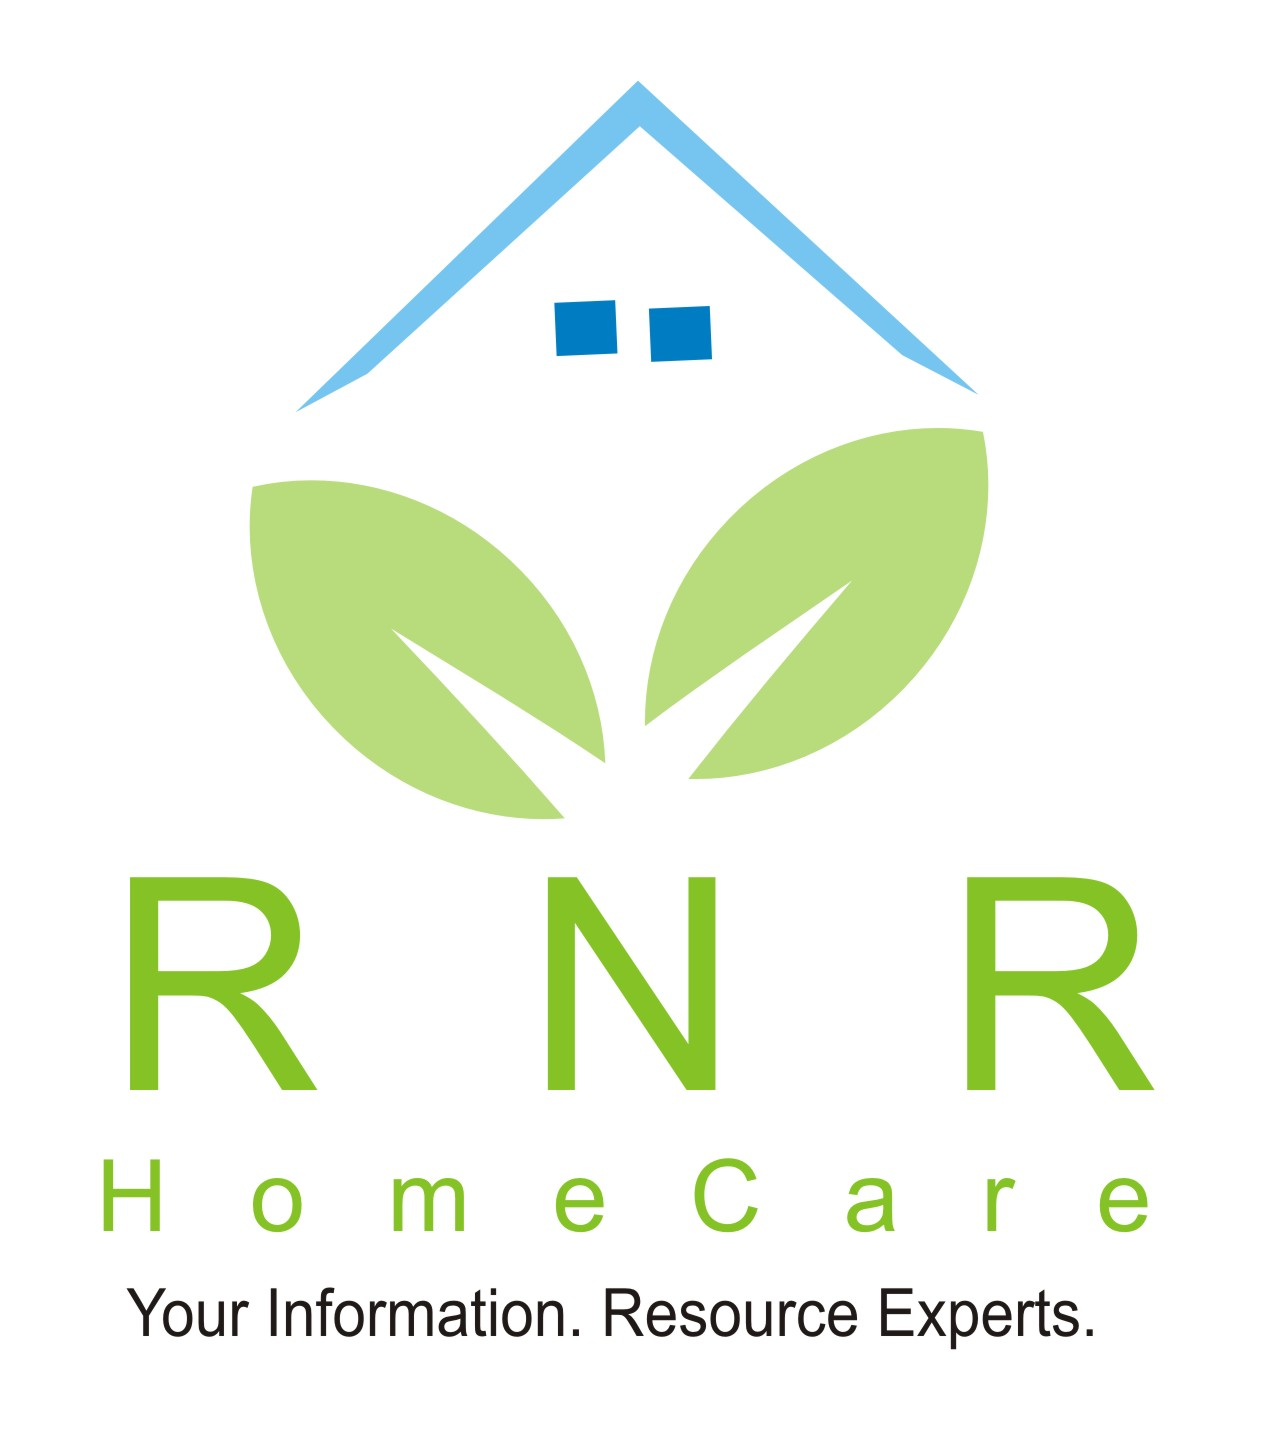 Logo Design by Choirul Umam - Entry No. 108 in the Logo Design Contest Imaginative Logo Design for RNR HomeCare.